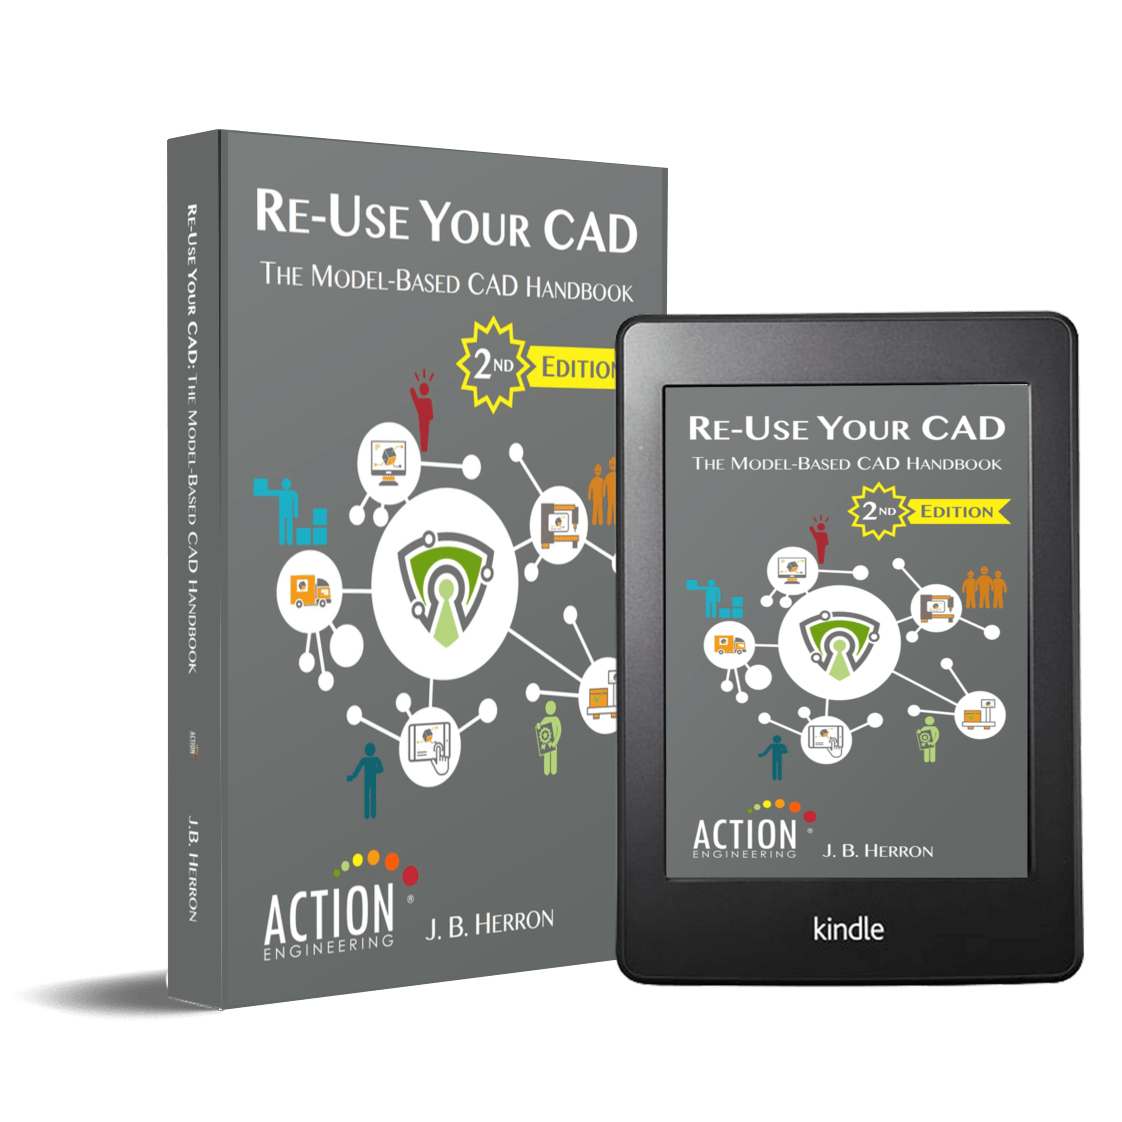 Re-Use Your CAD: The Model-Based CAD Handbook